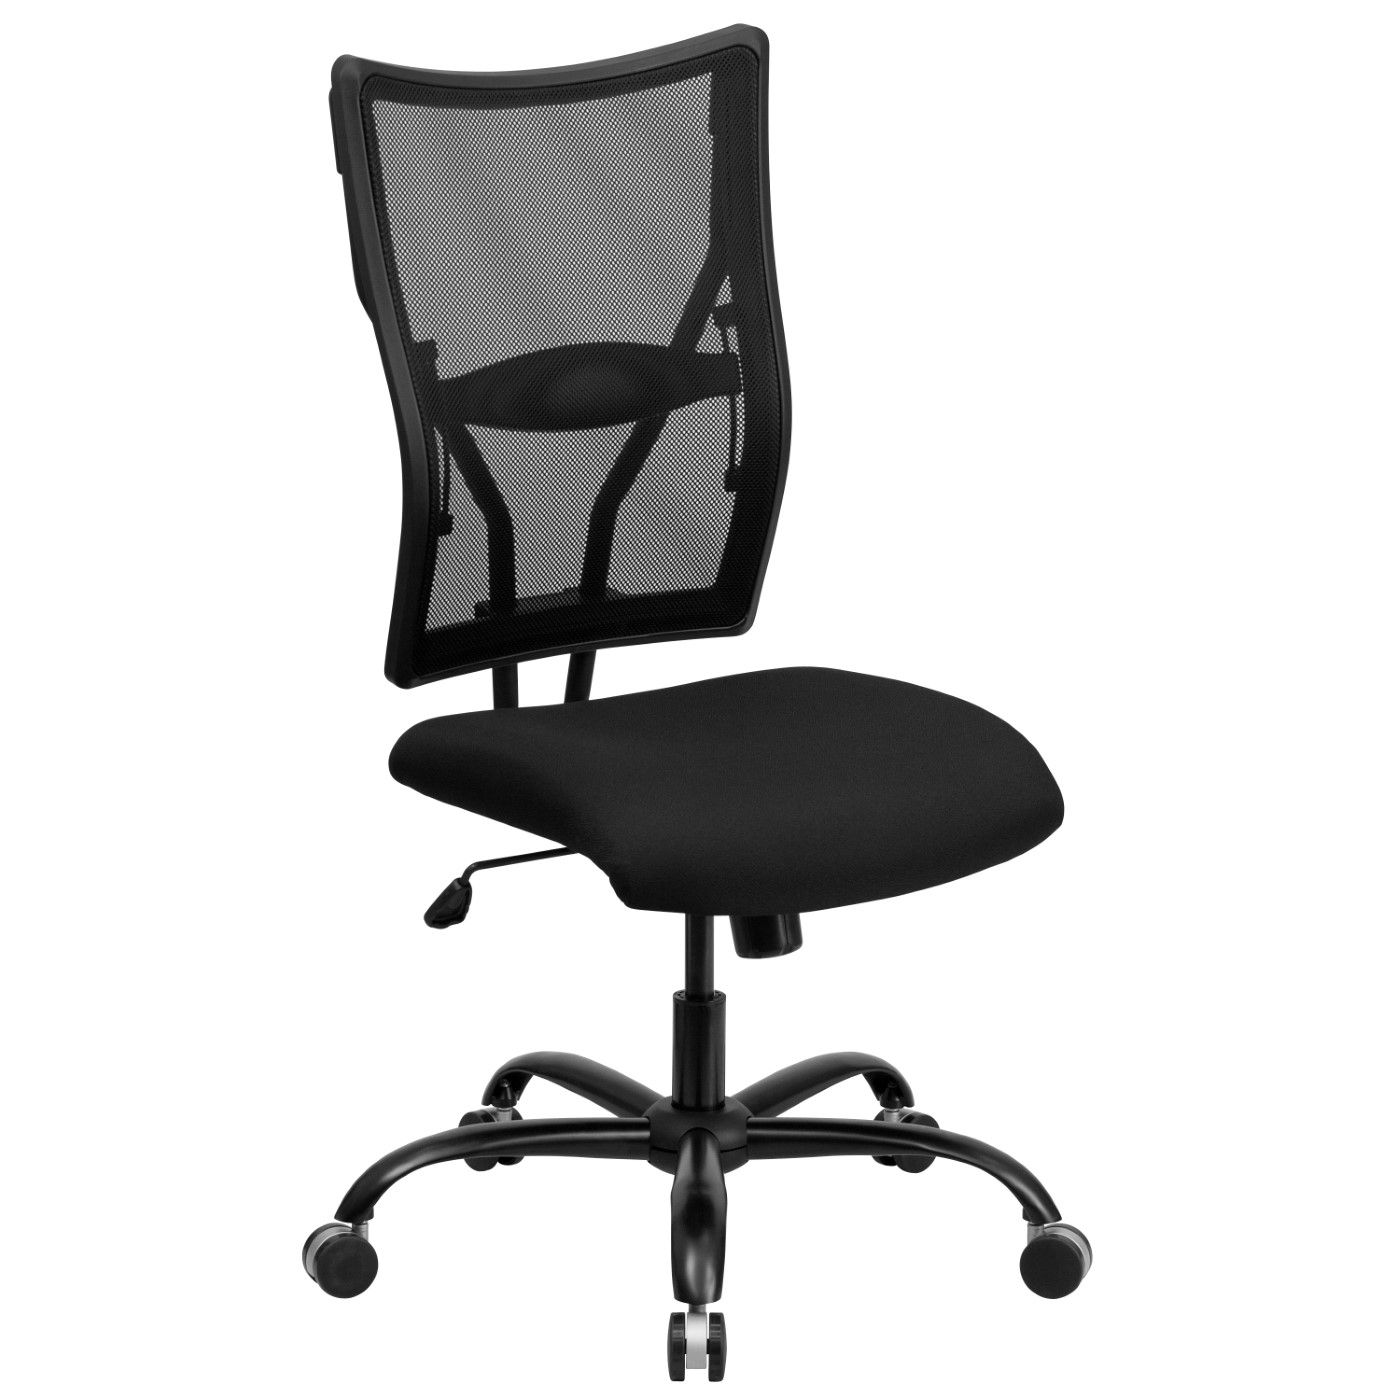 TOUGH ENOUGH Series Big & Tall 400 lb. Rated Black Mesh Executive Swivel Ergonomic Office Chair